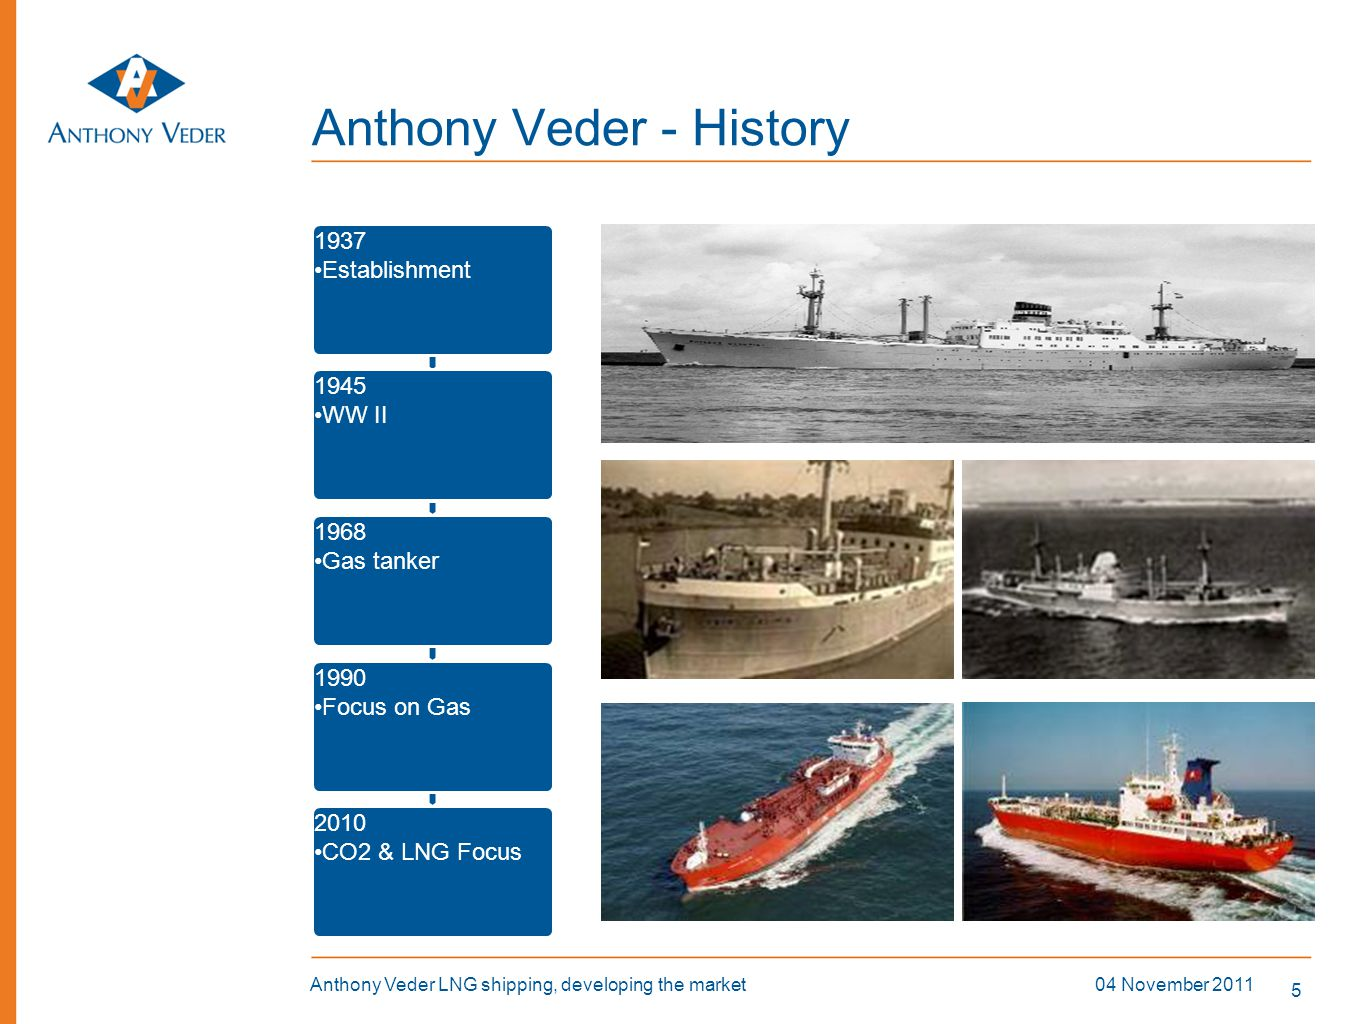 5 04 November 2011Anthony Veder LNG shipping, developing the market Anthony Veder - History 1937 Establishment 1945 WW II 1968 Gas tanker 1990 Focus o